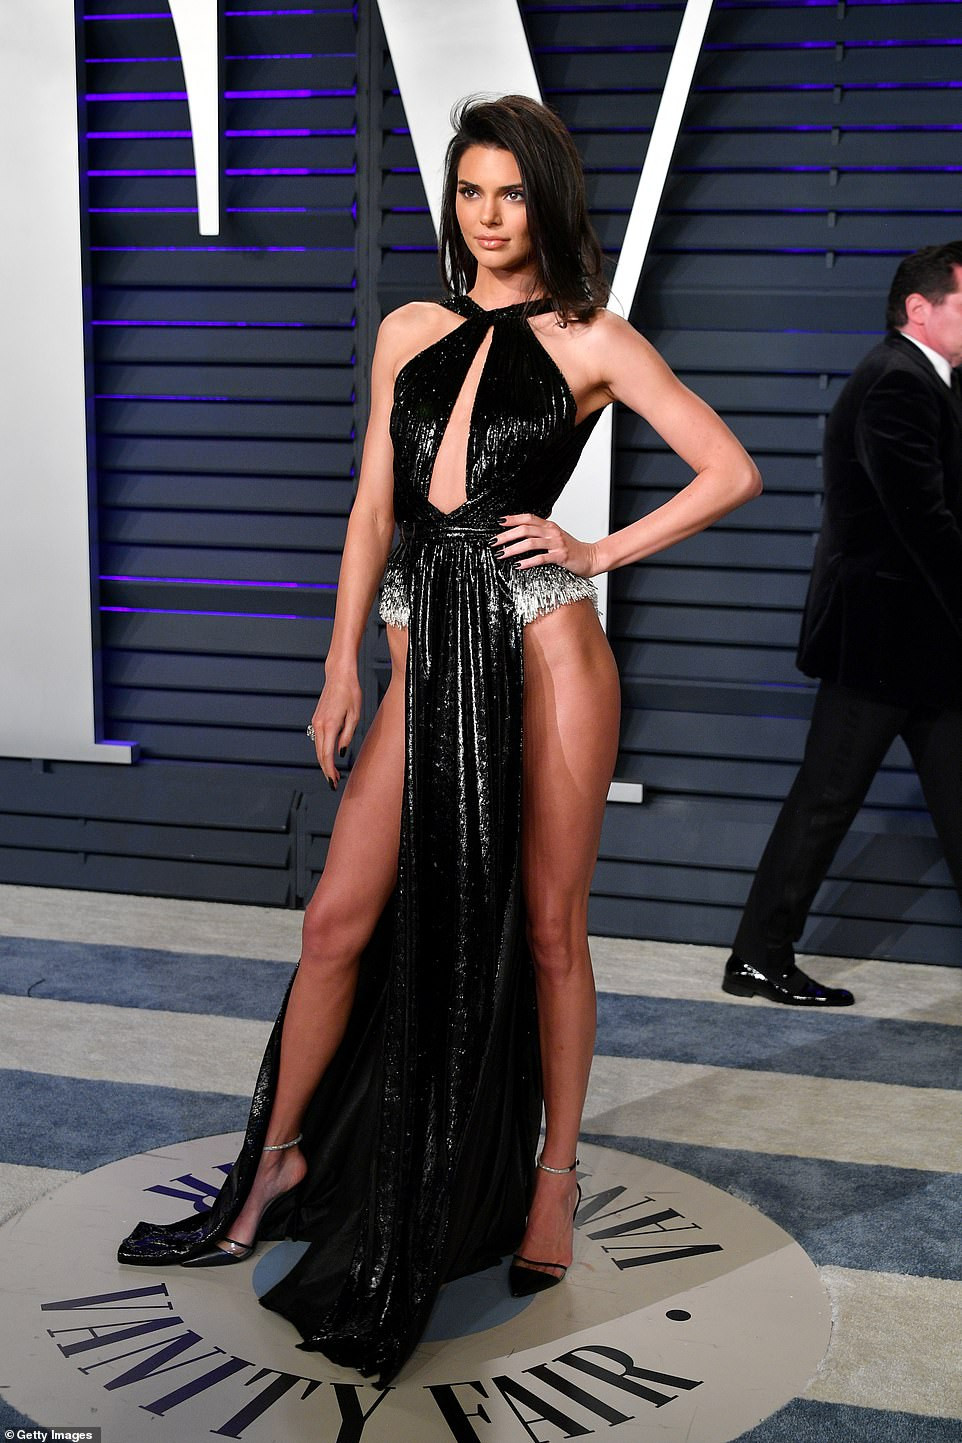 5c73a64c21dc9 - Kendall Jenner commands attention as she steps out for the Vanity Fair Oscars party